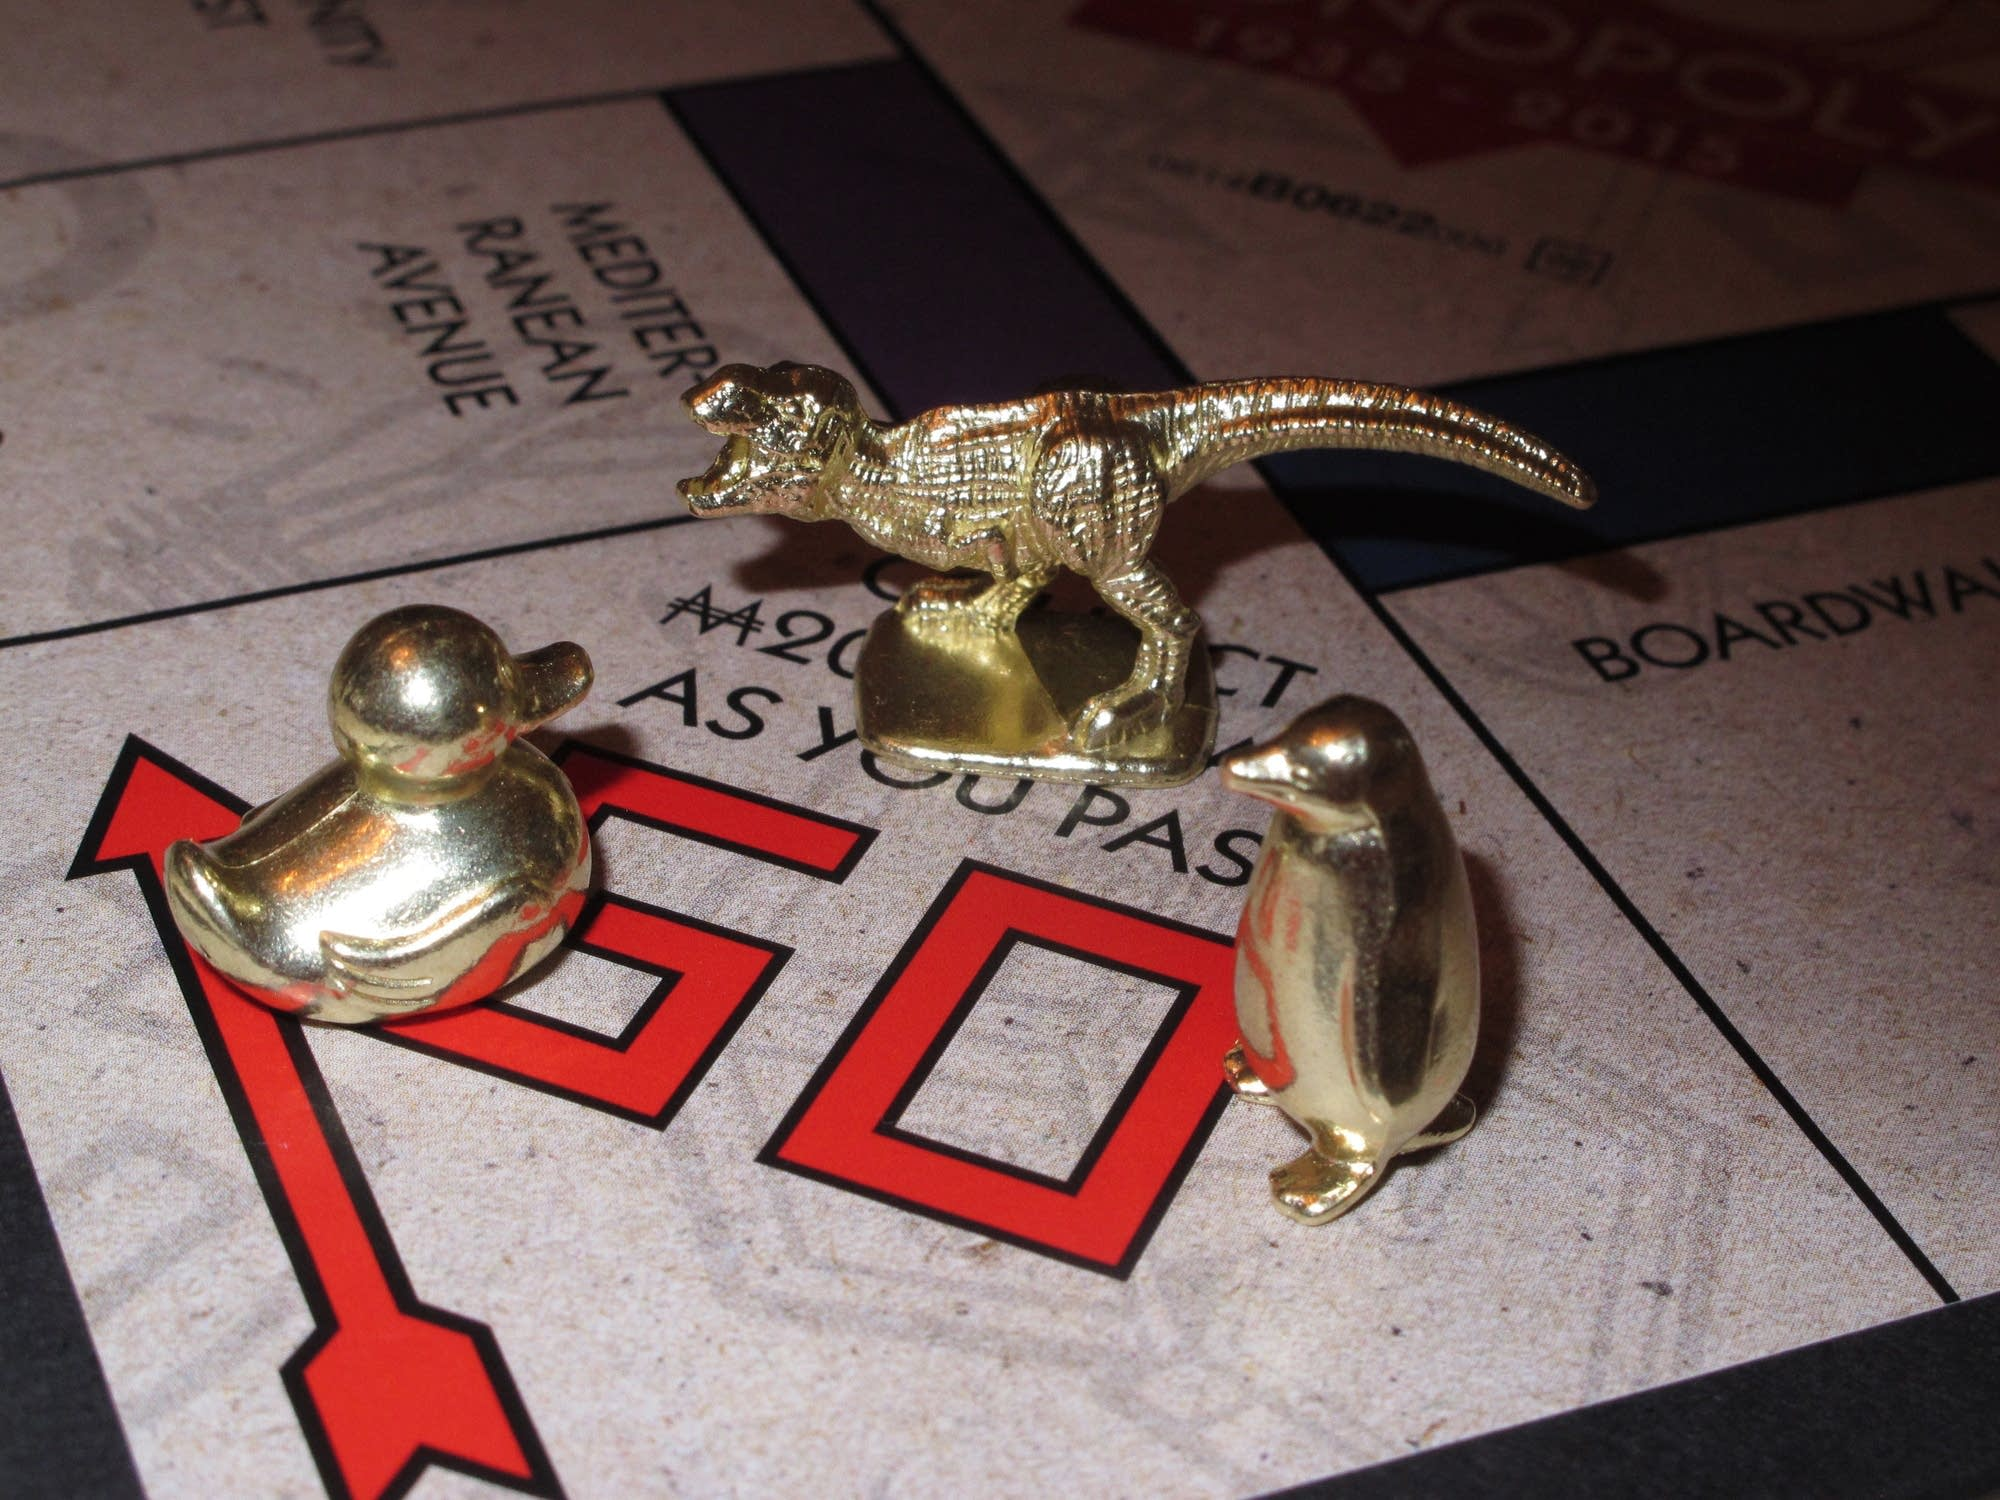 The three new tokens for the Monopoly board game